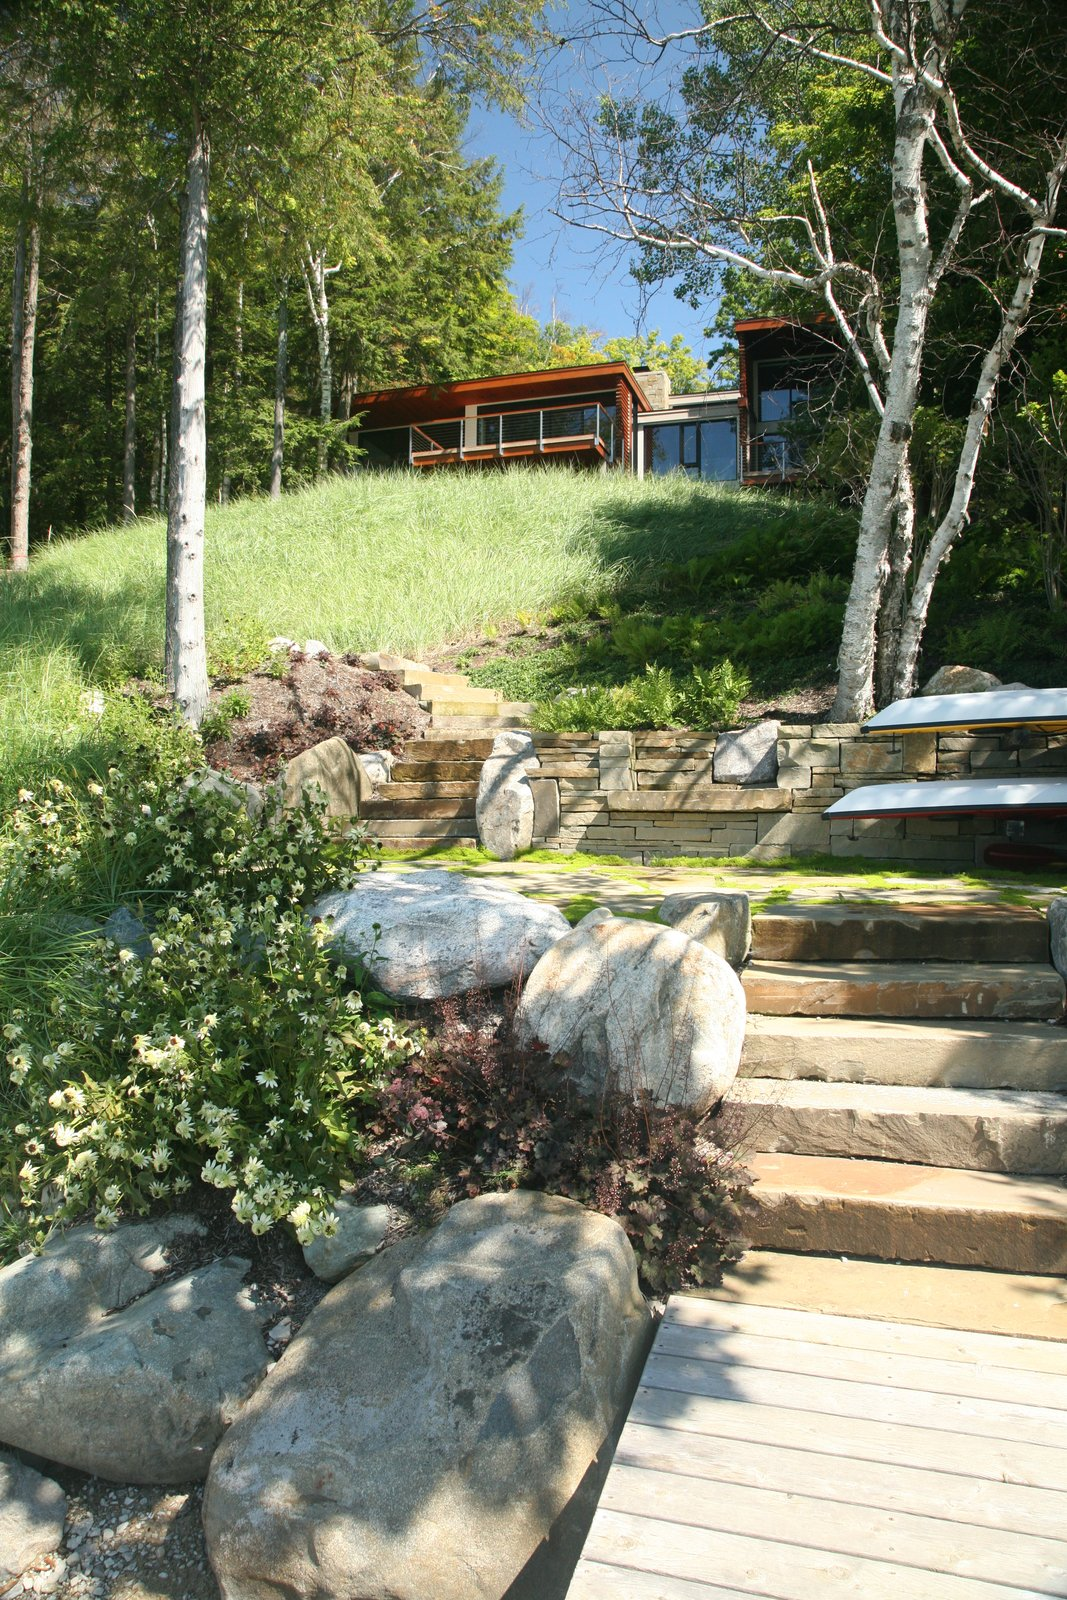 Outdoor, Back Yard, Slope, Field, Woodland, Garden, Shrubs, Trees, Grass, Walkways, Gardens, Hardscapes, Wood, Boulders, Flowers, Landscape, Large, Small, Pavers, and Stone  Best Outdoor Stone Boulders Photos from Walloon Lake House